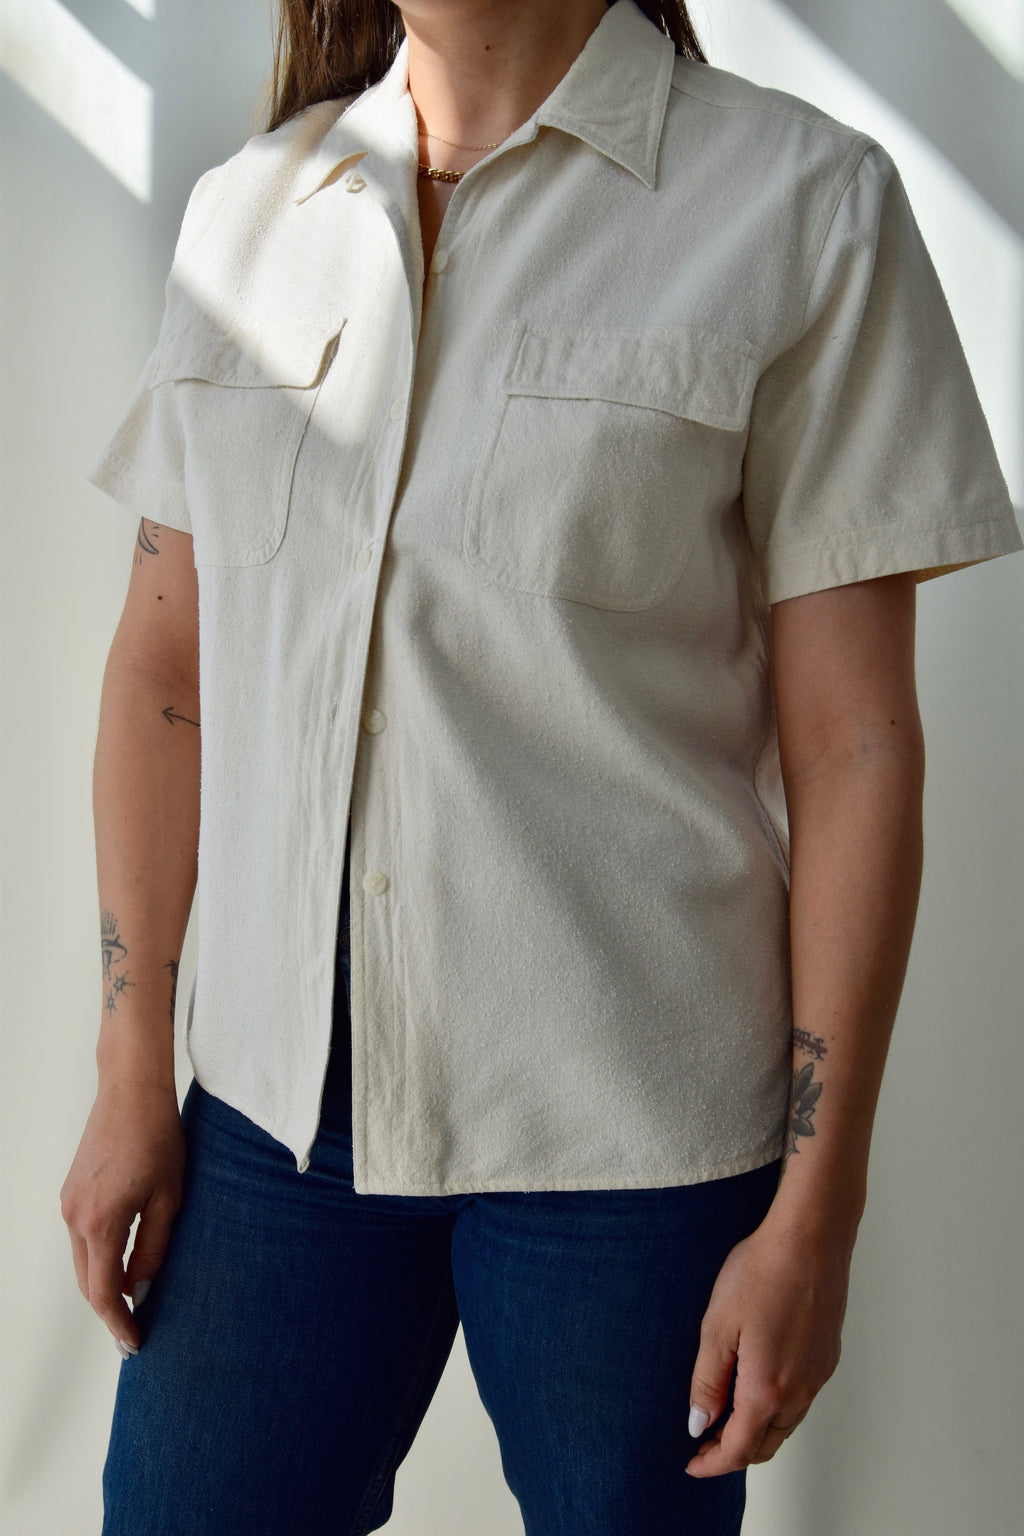 Vintage White Raw Silk Blouse FREE SHIPPING TO THE U.S.